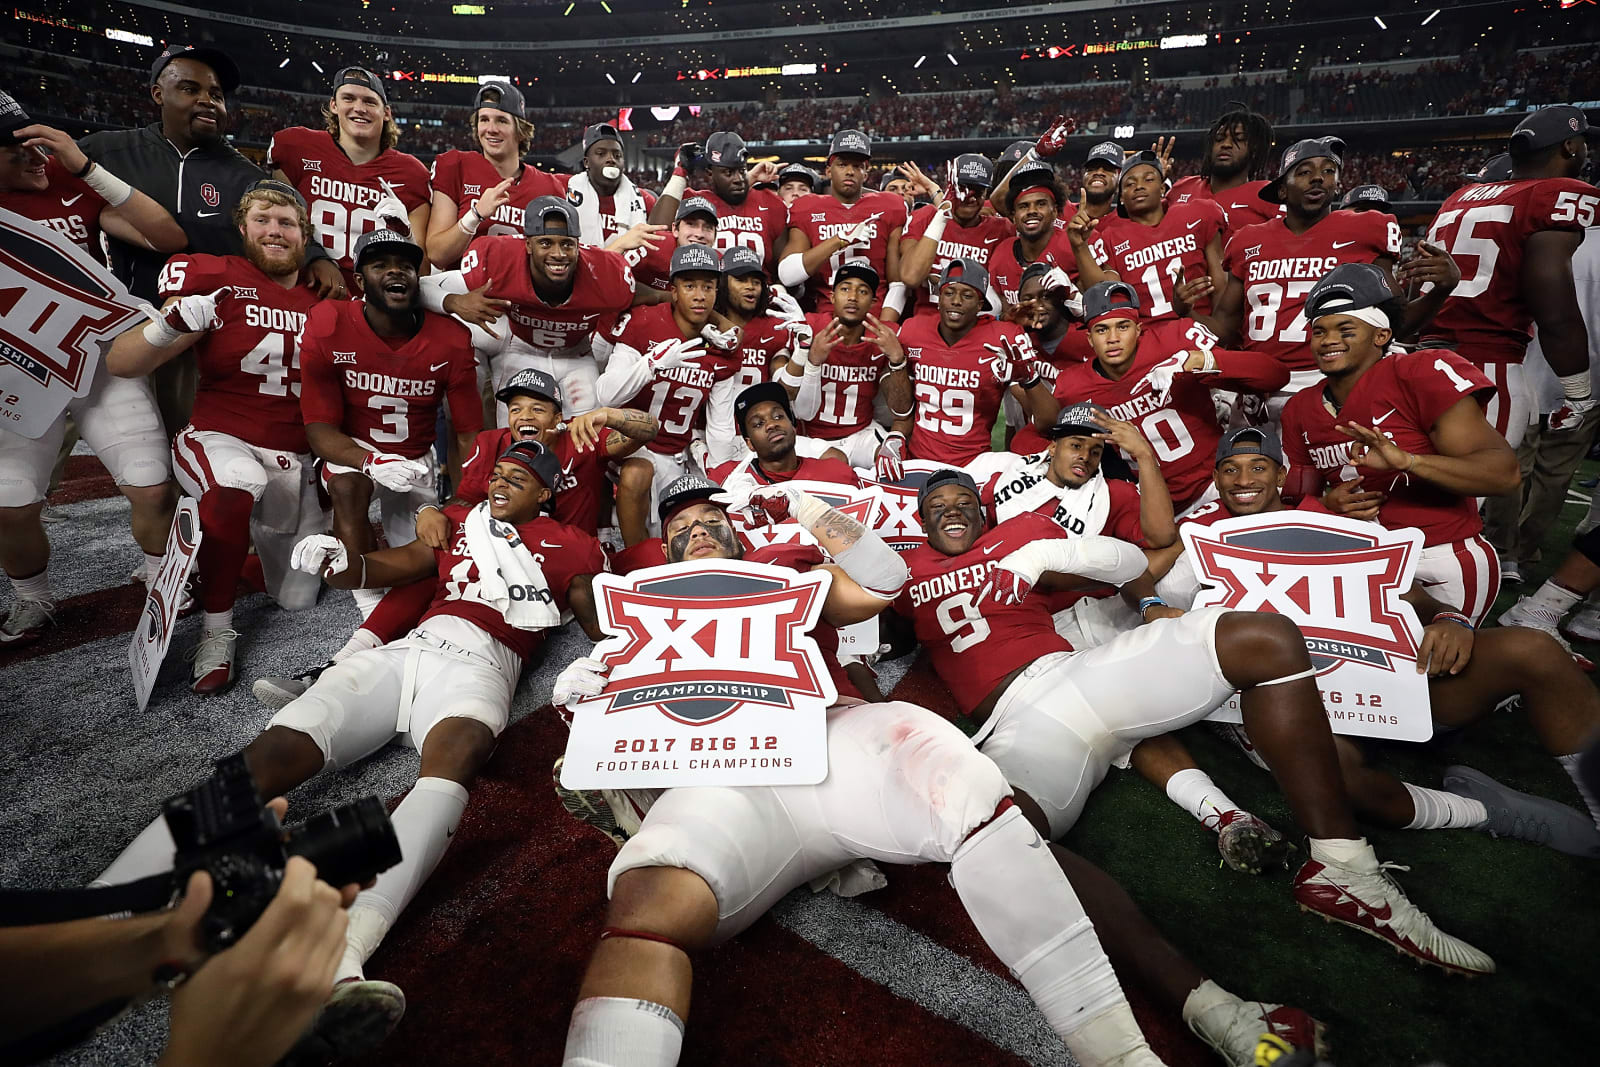 Oklahoma football: What do latest CFP rankings mean for OU ...